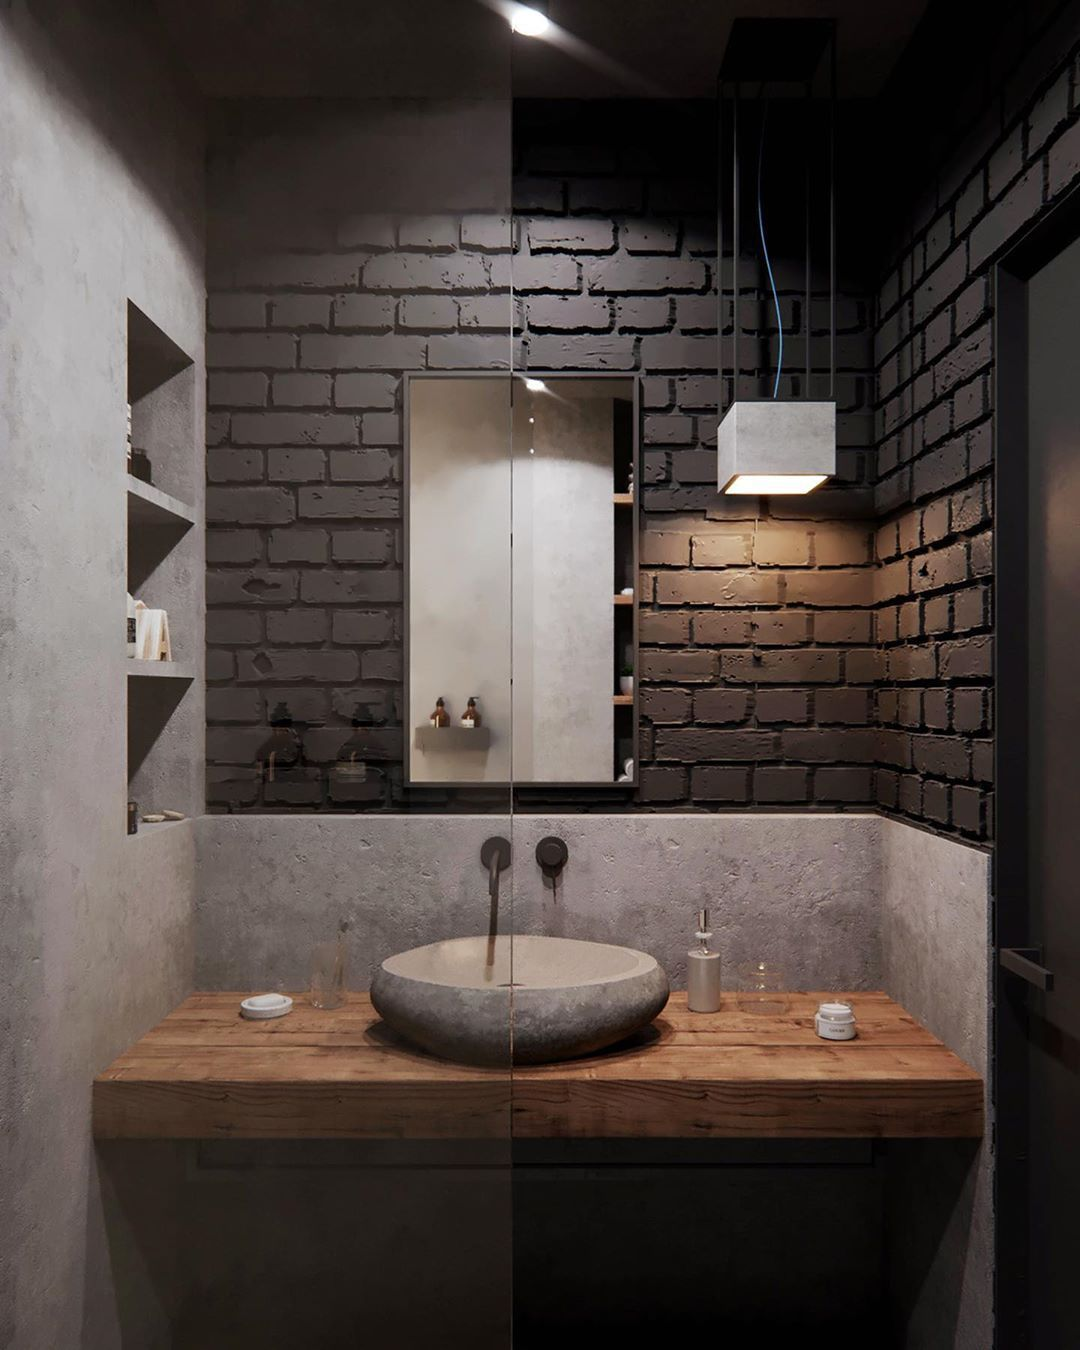 9 Secret Advice To Make An Outstanding Home Bathroom Remodel Stylish Bathroom Small Master Bathroom Bathroom Remodel Master